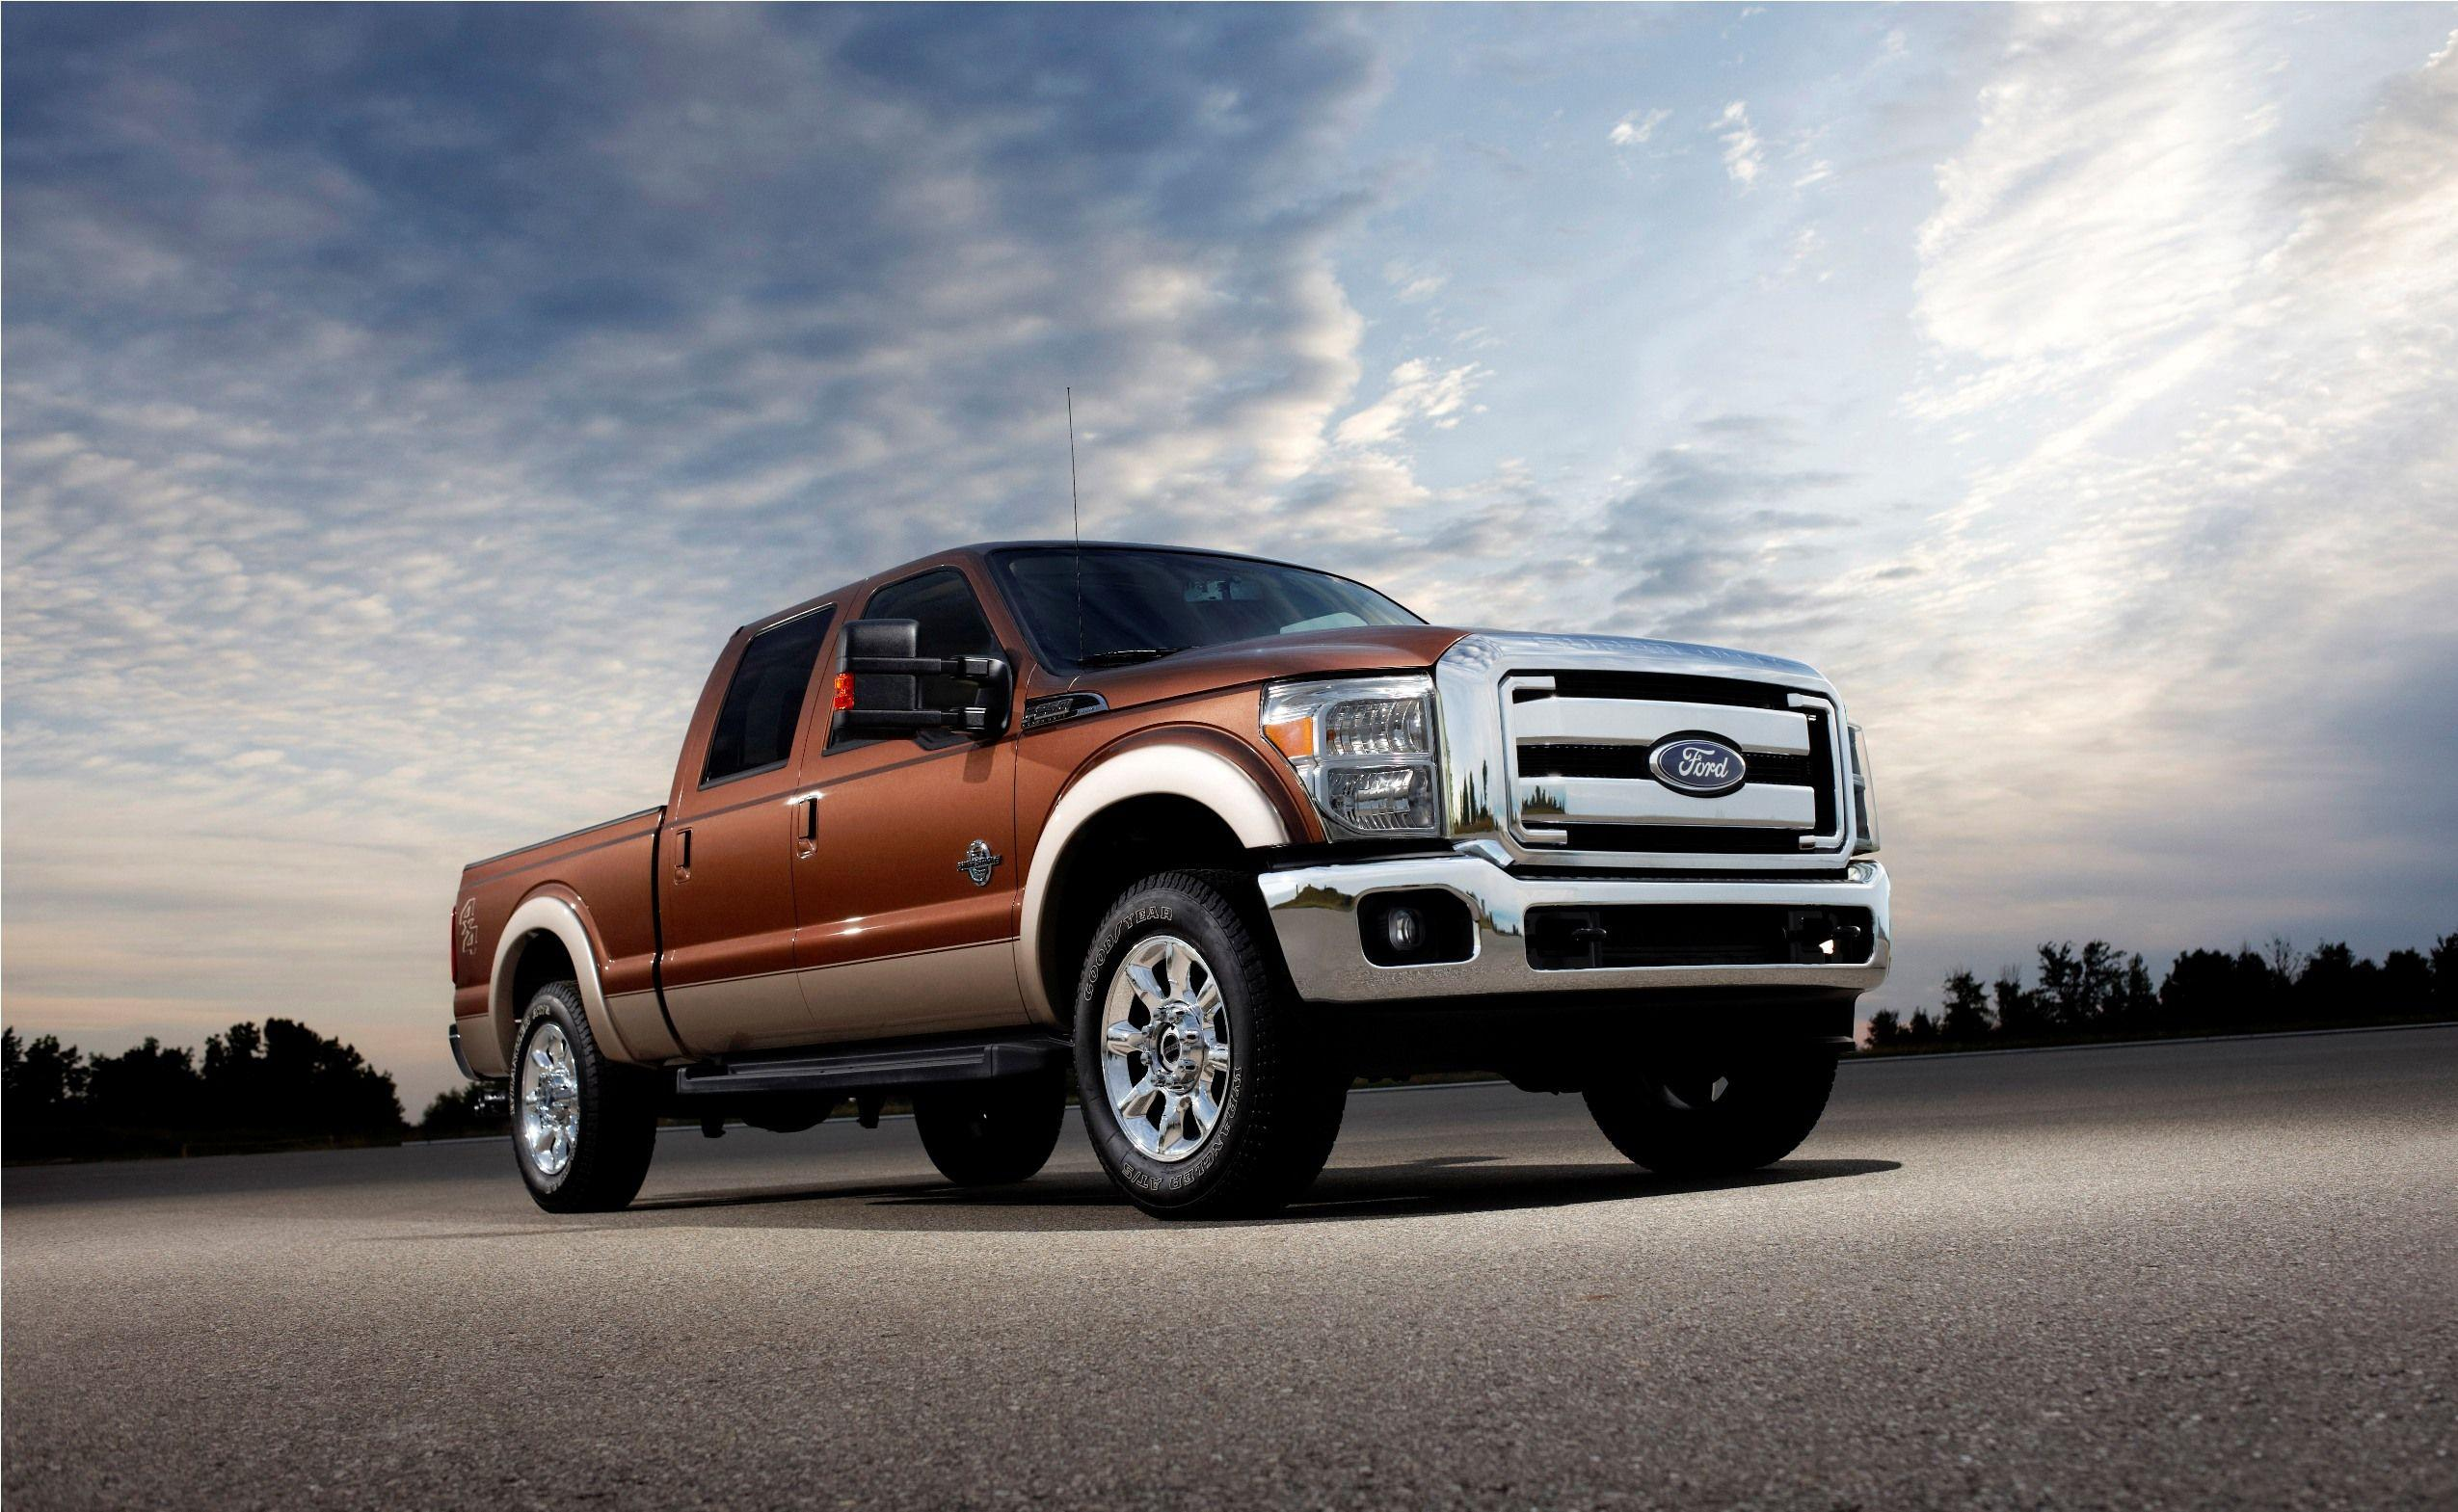 Ford Powerstroke Wallpaper >> Ford Truck Wallpapers - Wallpaper Cave